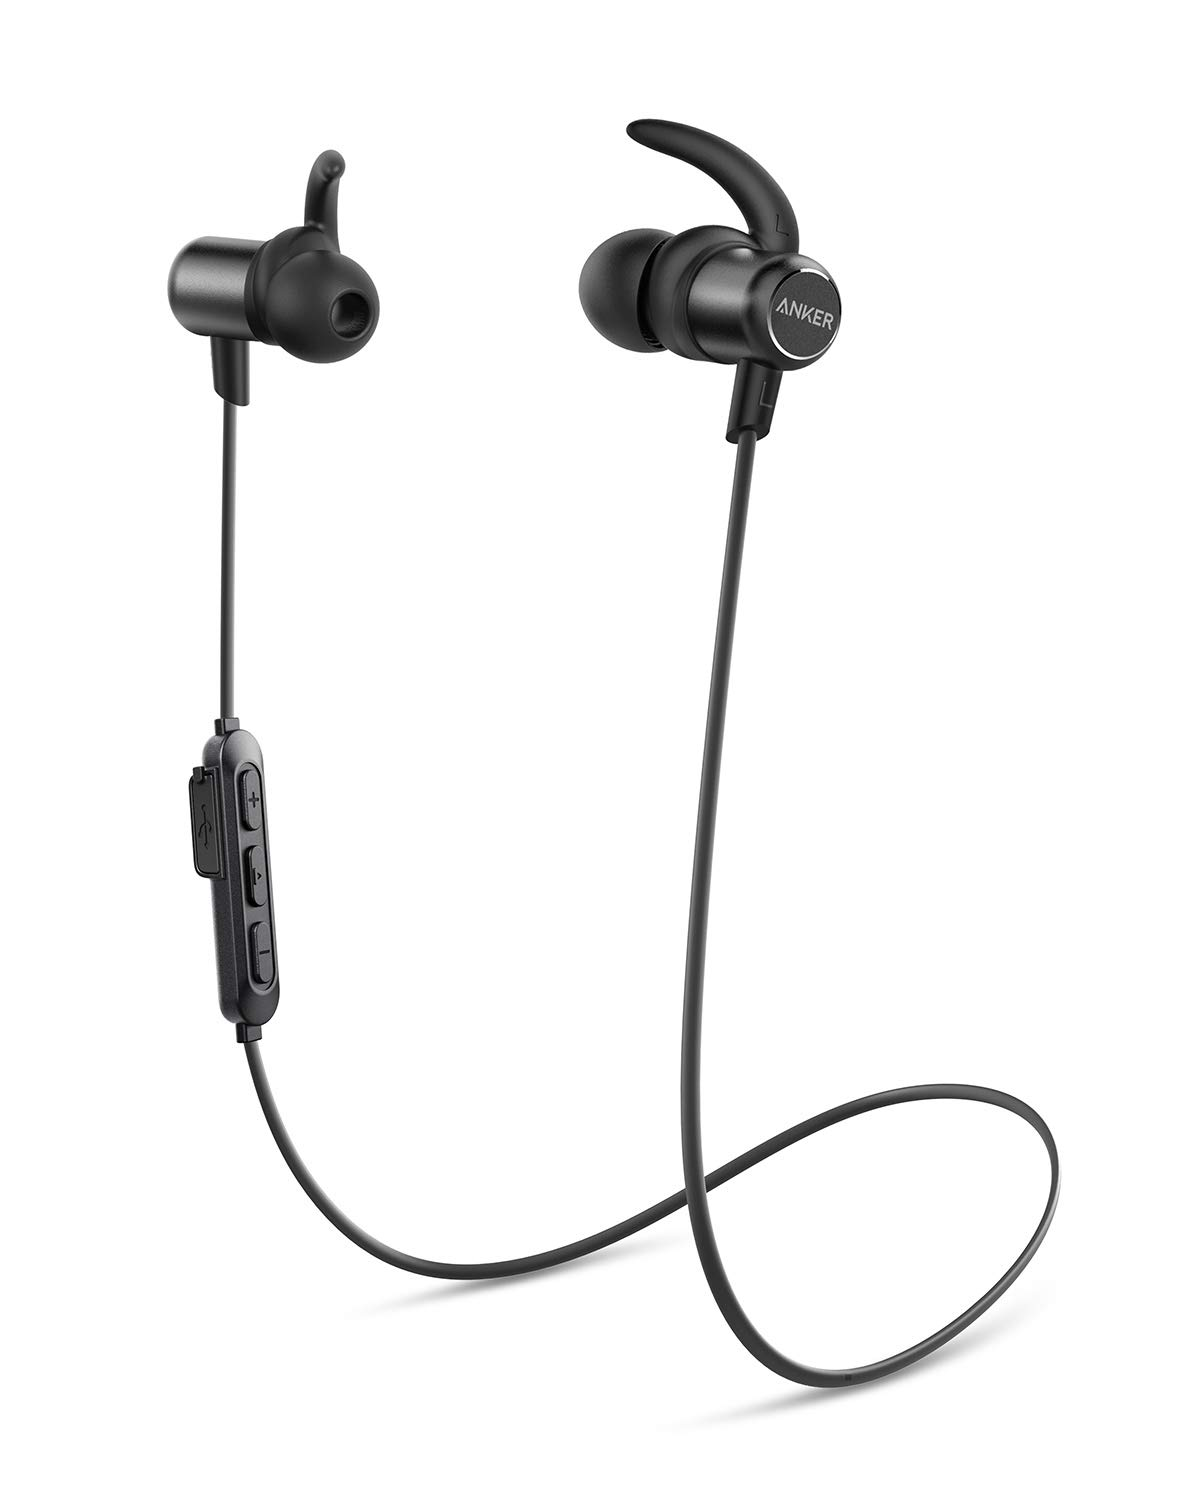 8dd425f5741 Anker Wireless Headphones, Upgraded SoundBuds Slim Workout Headphones  Magnetic In-Ear Earbuds, Bluetooth 5.0, 10-Hour Playtime, IPX7 Waterproof  for Workouts ...